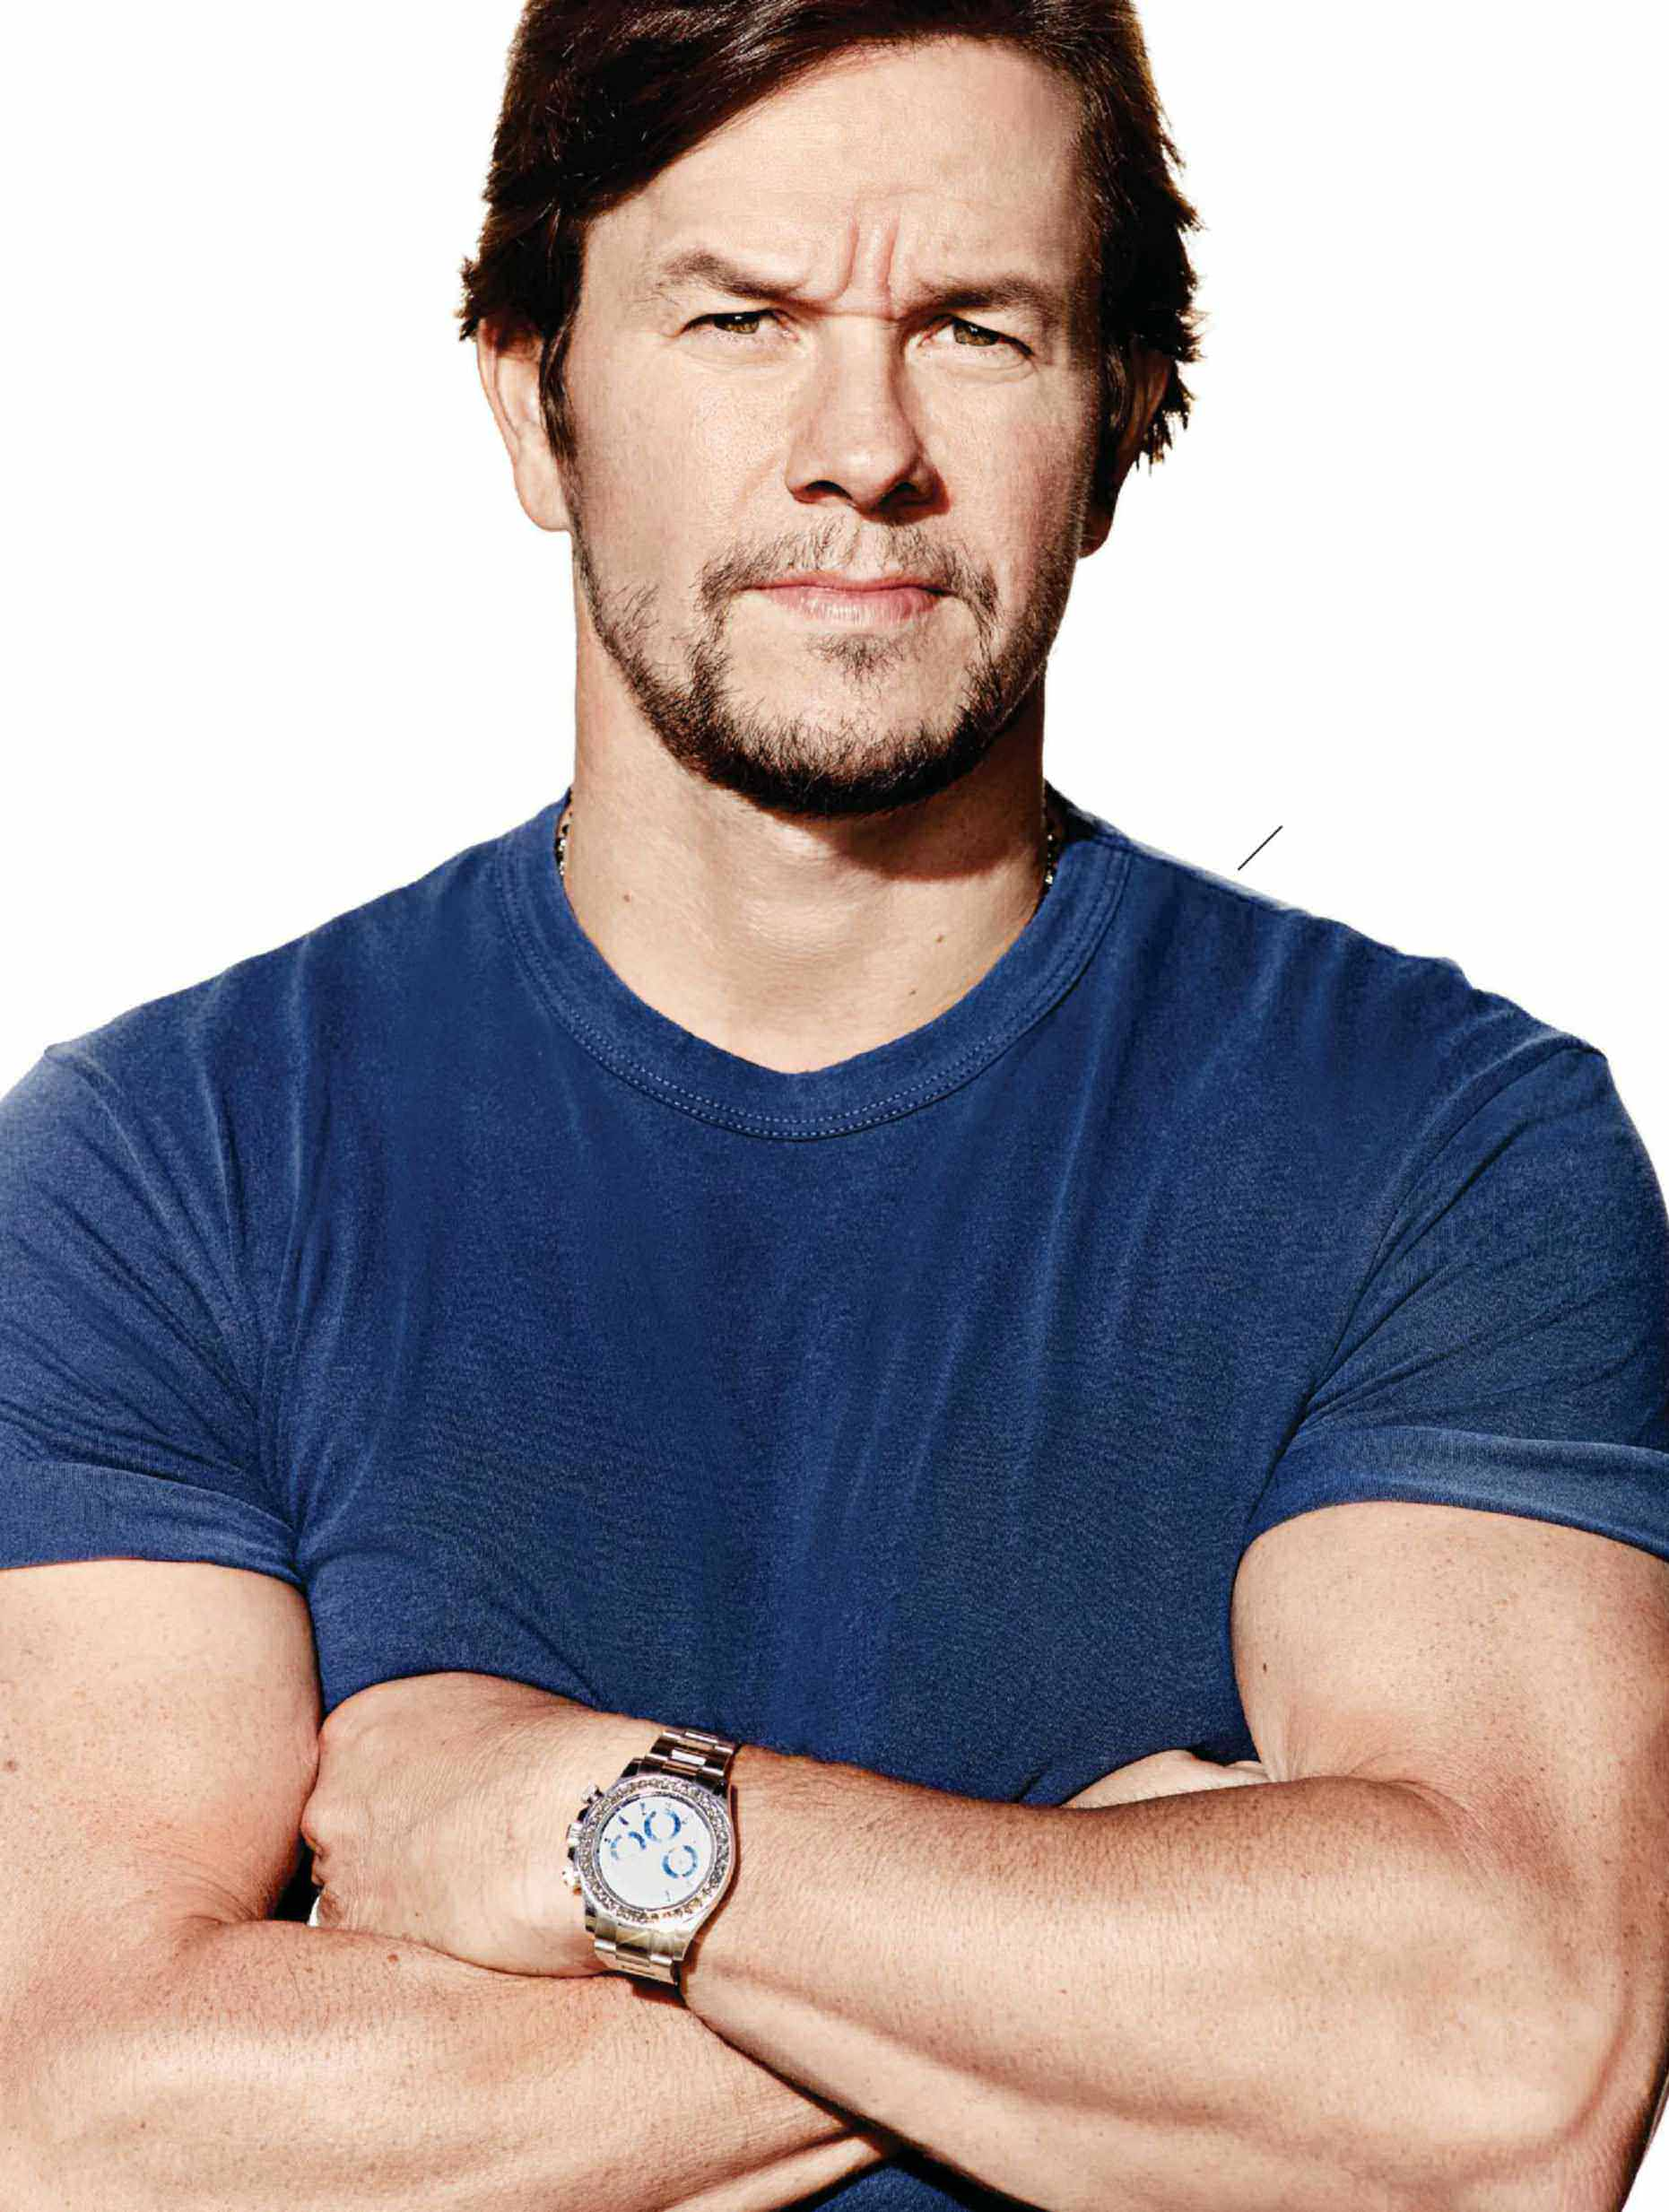 mark wahlberg - photo #10